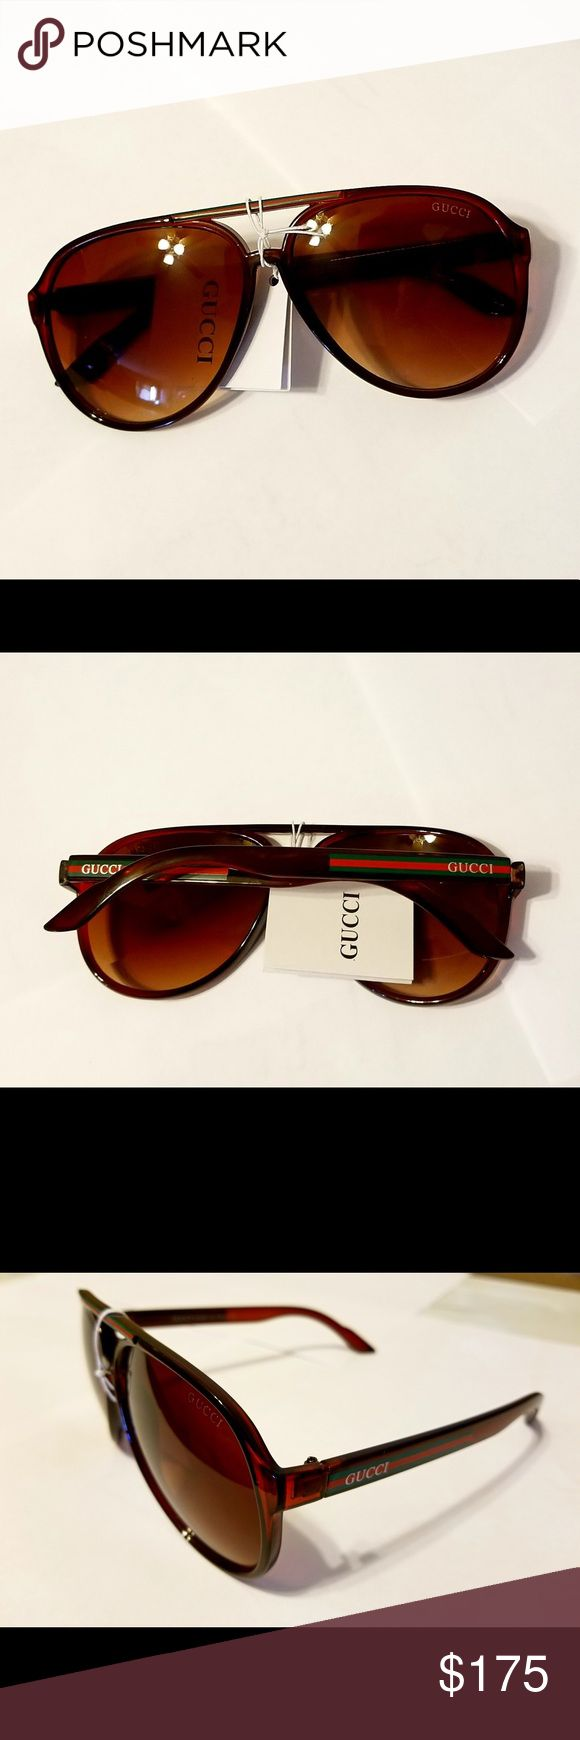 Gucci sunglasses Unisex Unisex Gucci sunglasses Brand New Model GG1622/s made in Italy. Aviator Habana retro,  really cool shades. No accessories are included Only the sunglasses Gucci Accessories Sunglasses